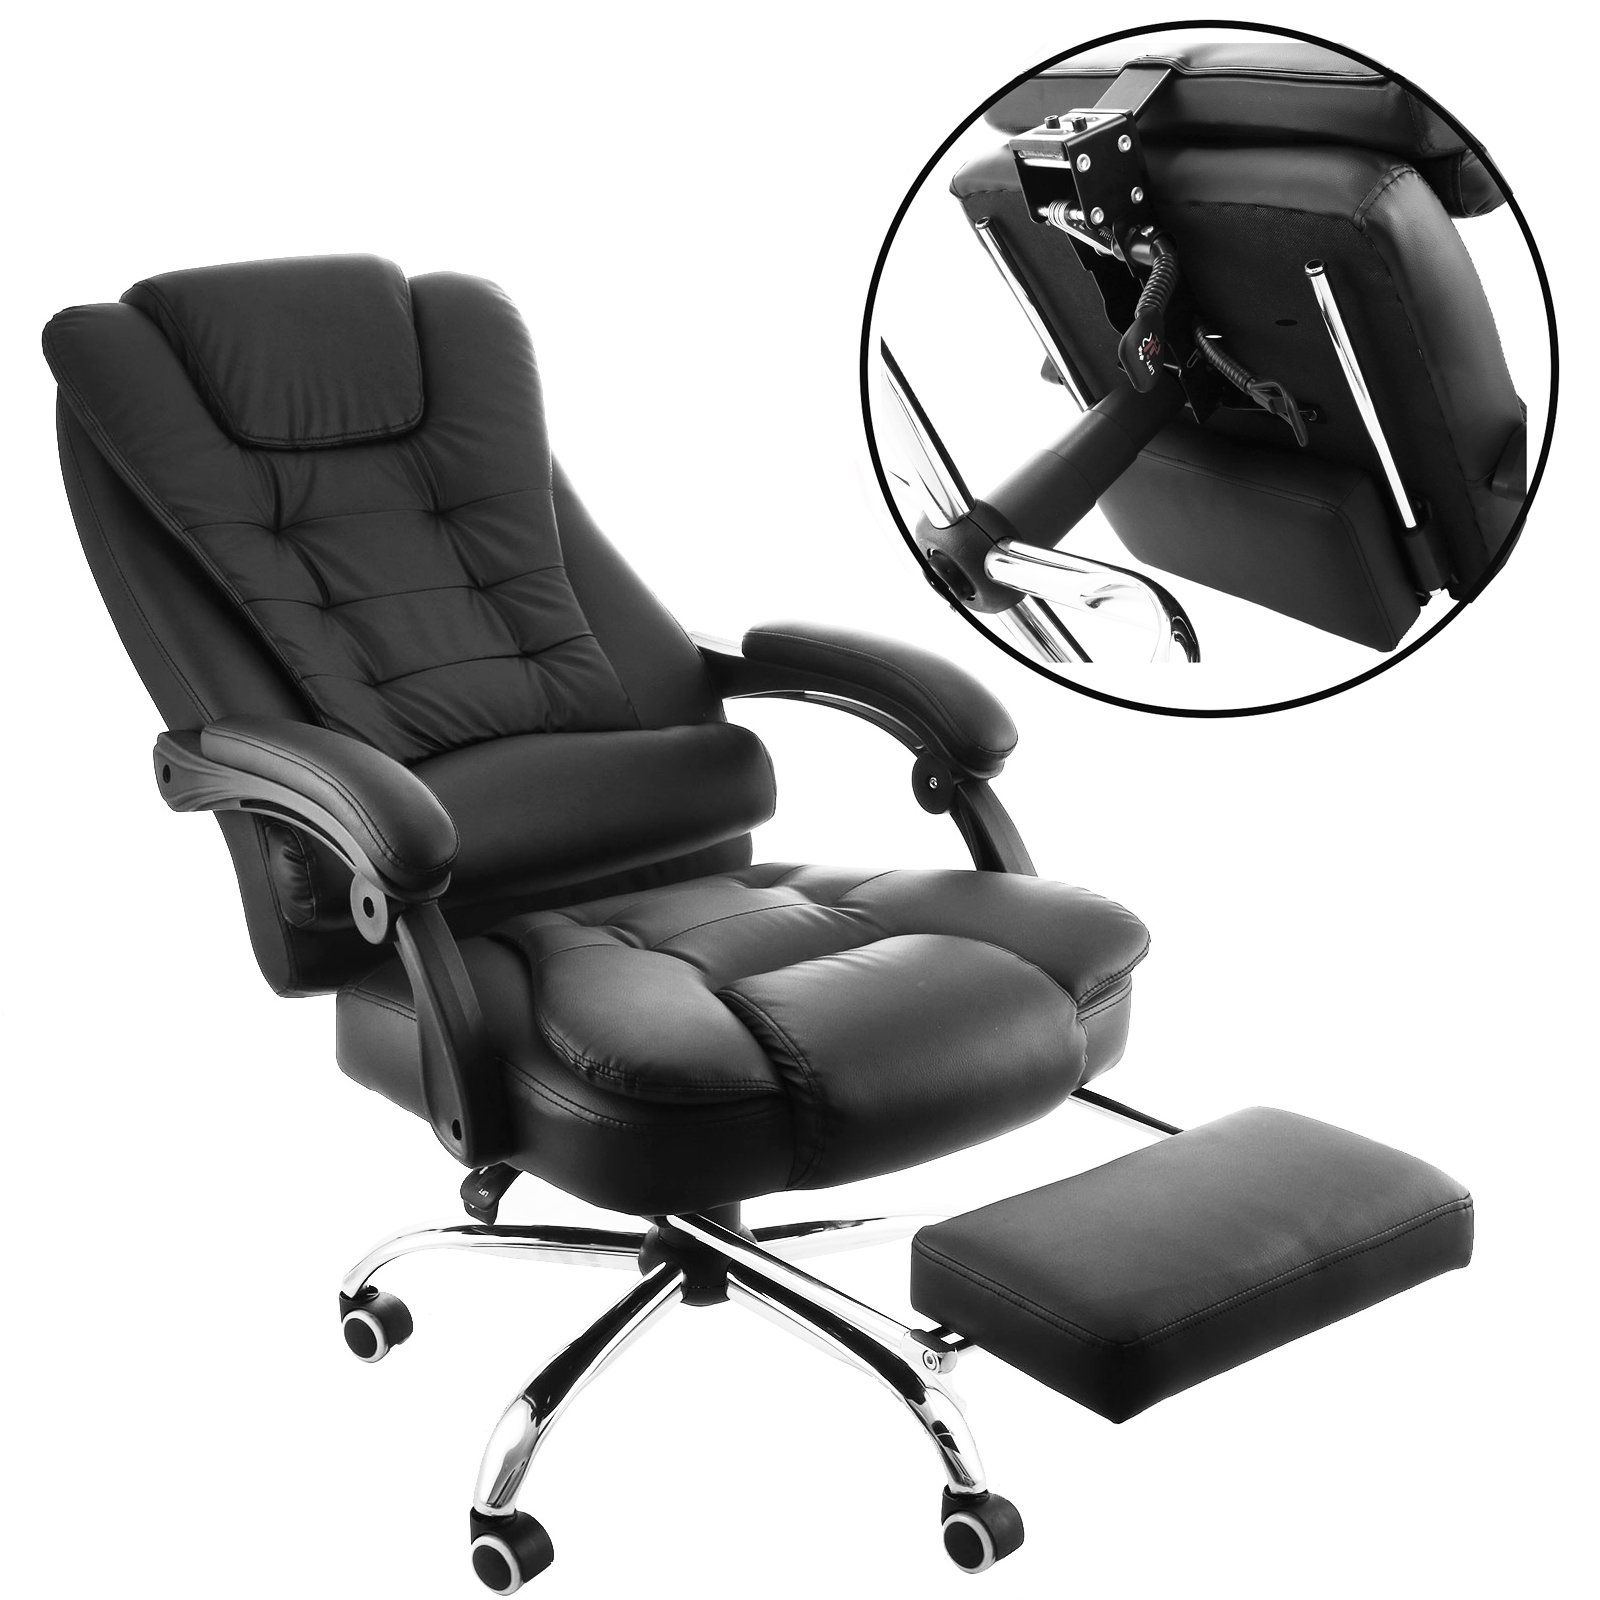 Orangea High Back Office Chair Ergonomic Pu Leather Executive Office